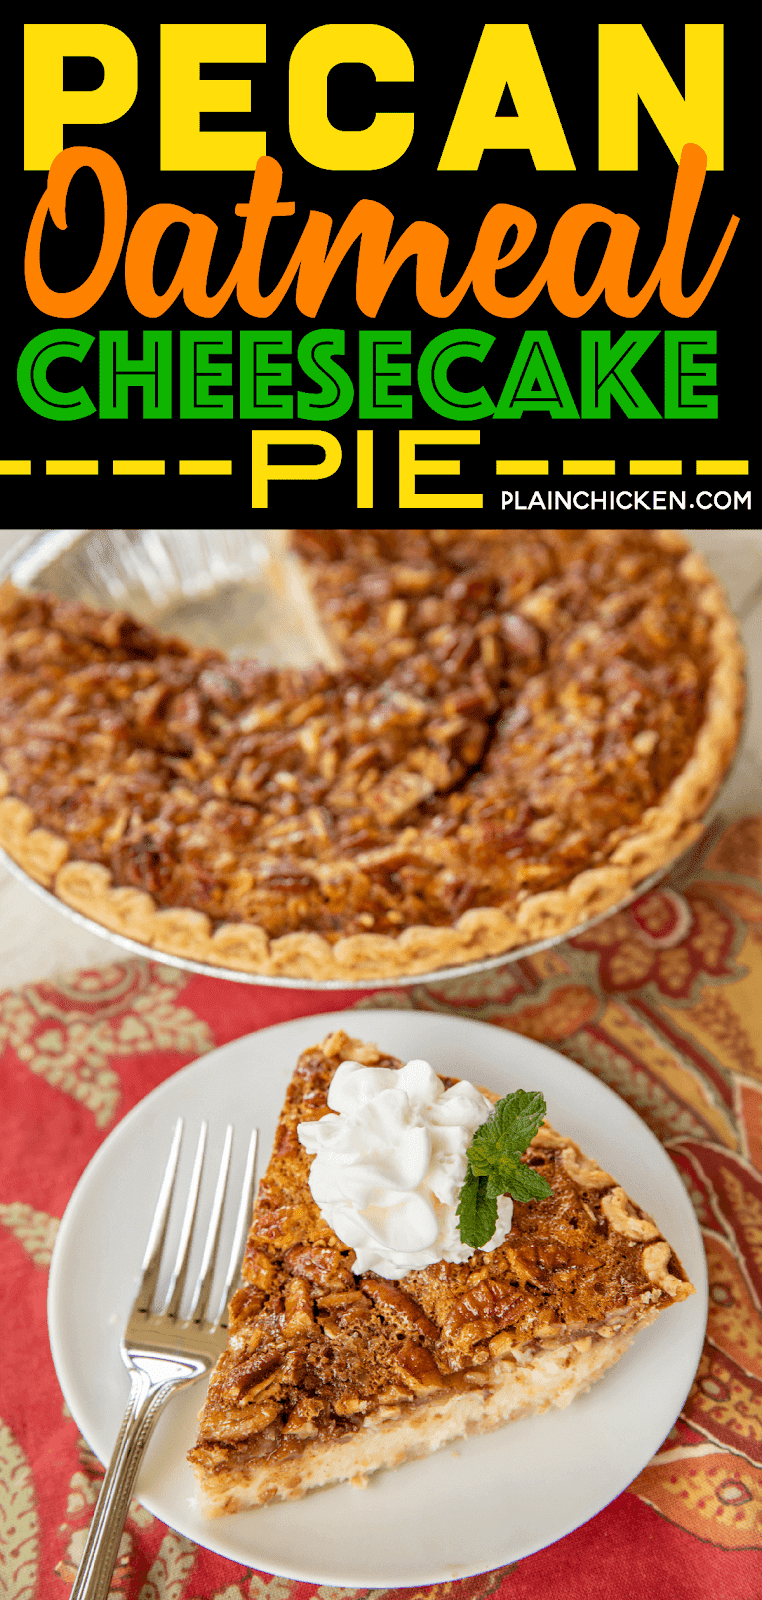 Pecan Oatmeal Cheesecake Pie - three favorites in one pie! A favorite for the holidays! Cream cheese, eggs, sugar, vanilla, oatmeal, pecans, corn syrup, cinnamon and pie crust. Can make a day in advance and refrigerate until ready to serve. I always have to double the recipe because everyone LOVES this delicious pie recipe!!! #pie #dessert #pecan #oatmeal #cheesecake #holidaydessert